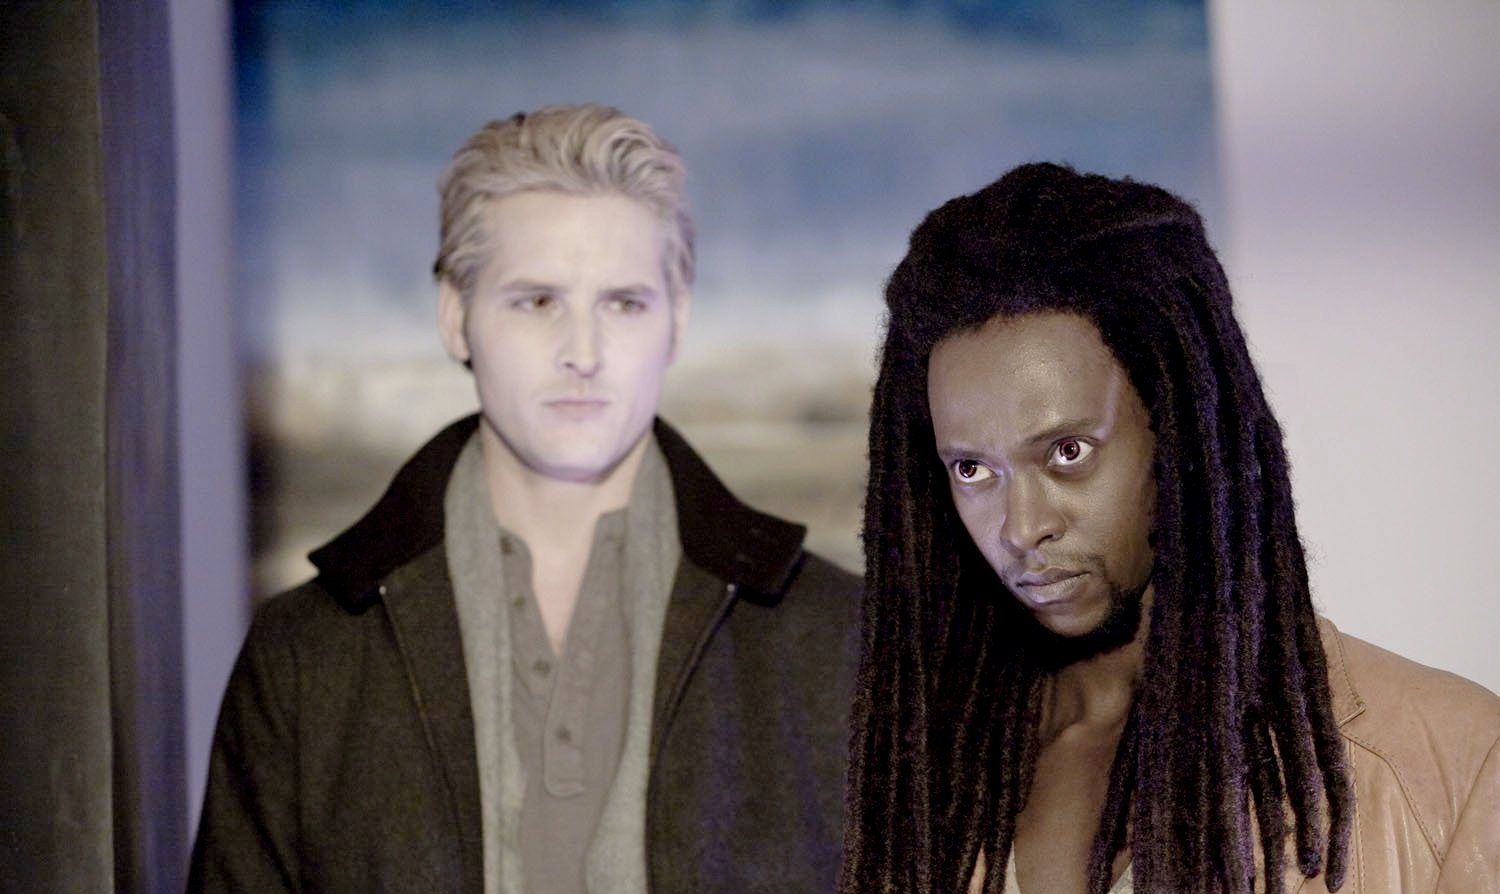 Peter Facinelli stars as Dr. Carlisle Cullen and Edi Gathegi stars as Laurent in Summit Entertainment's Twilight (2008)